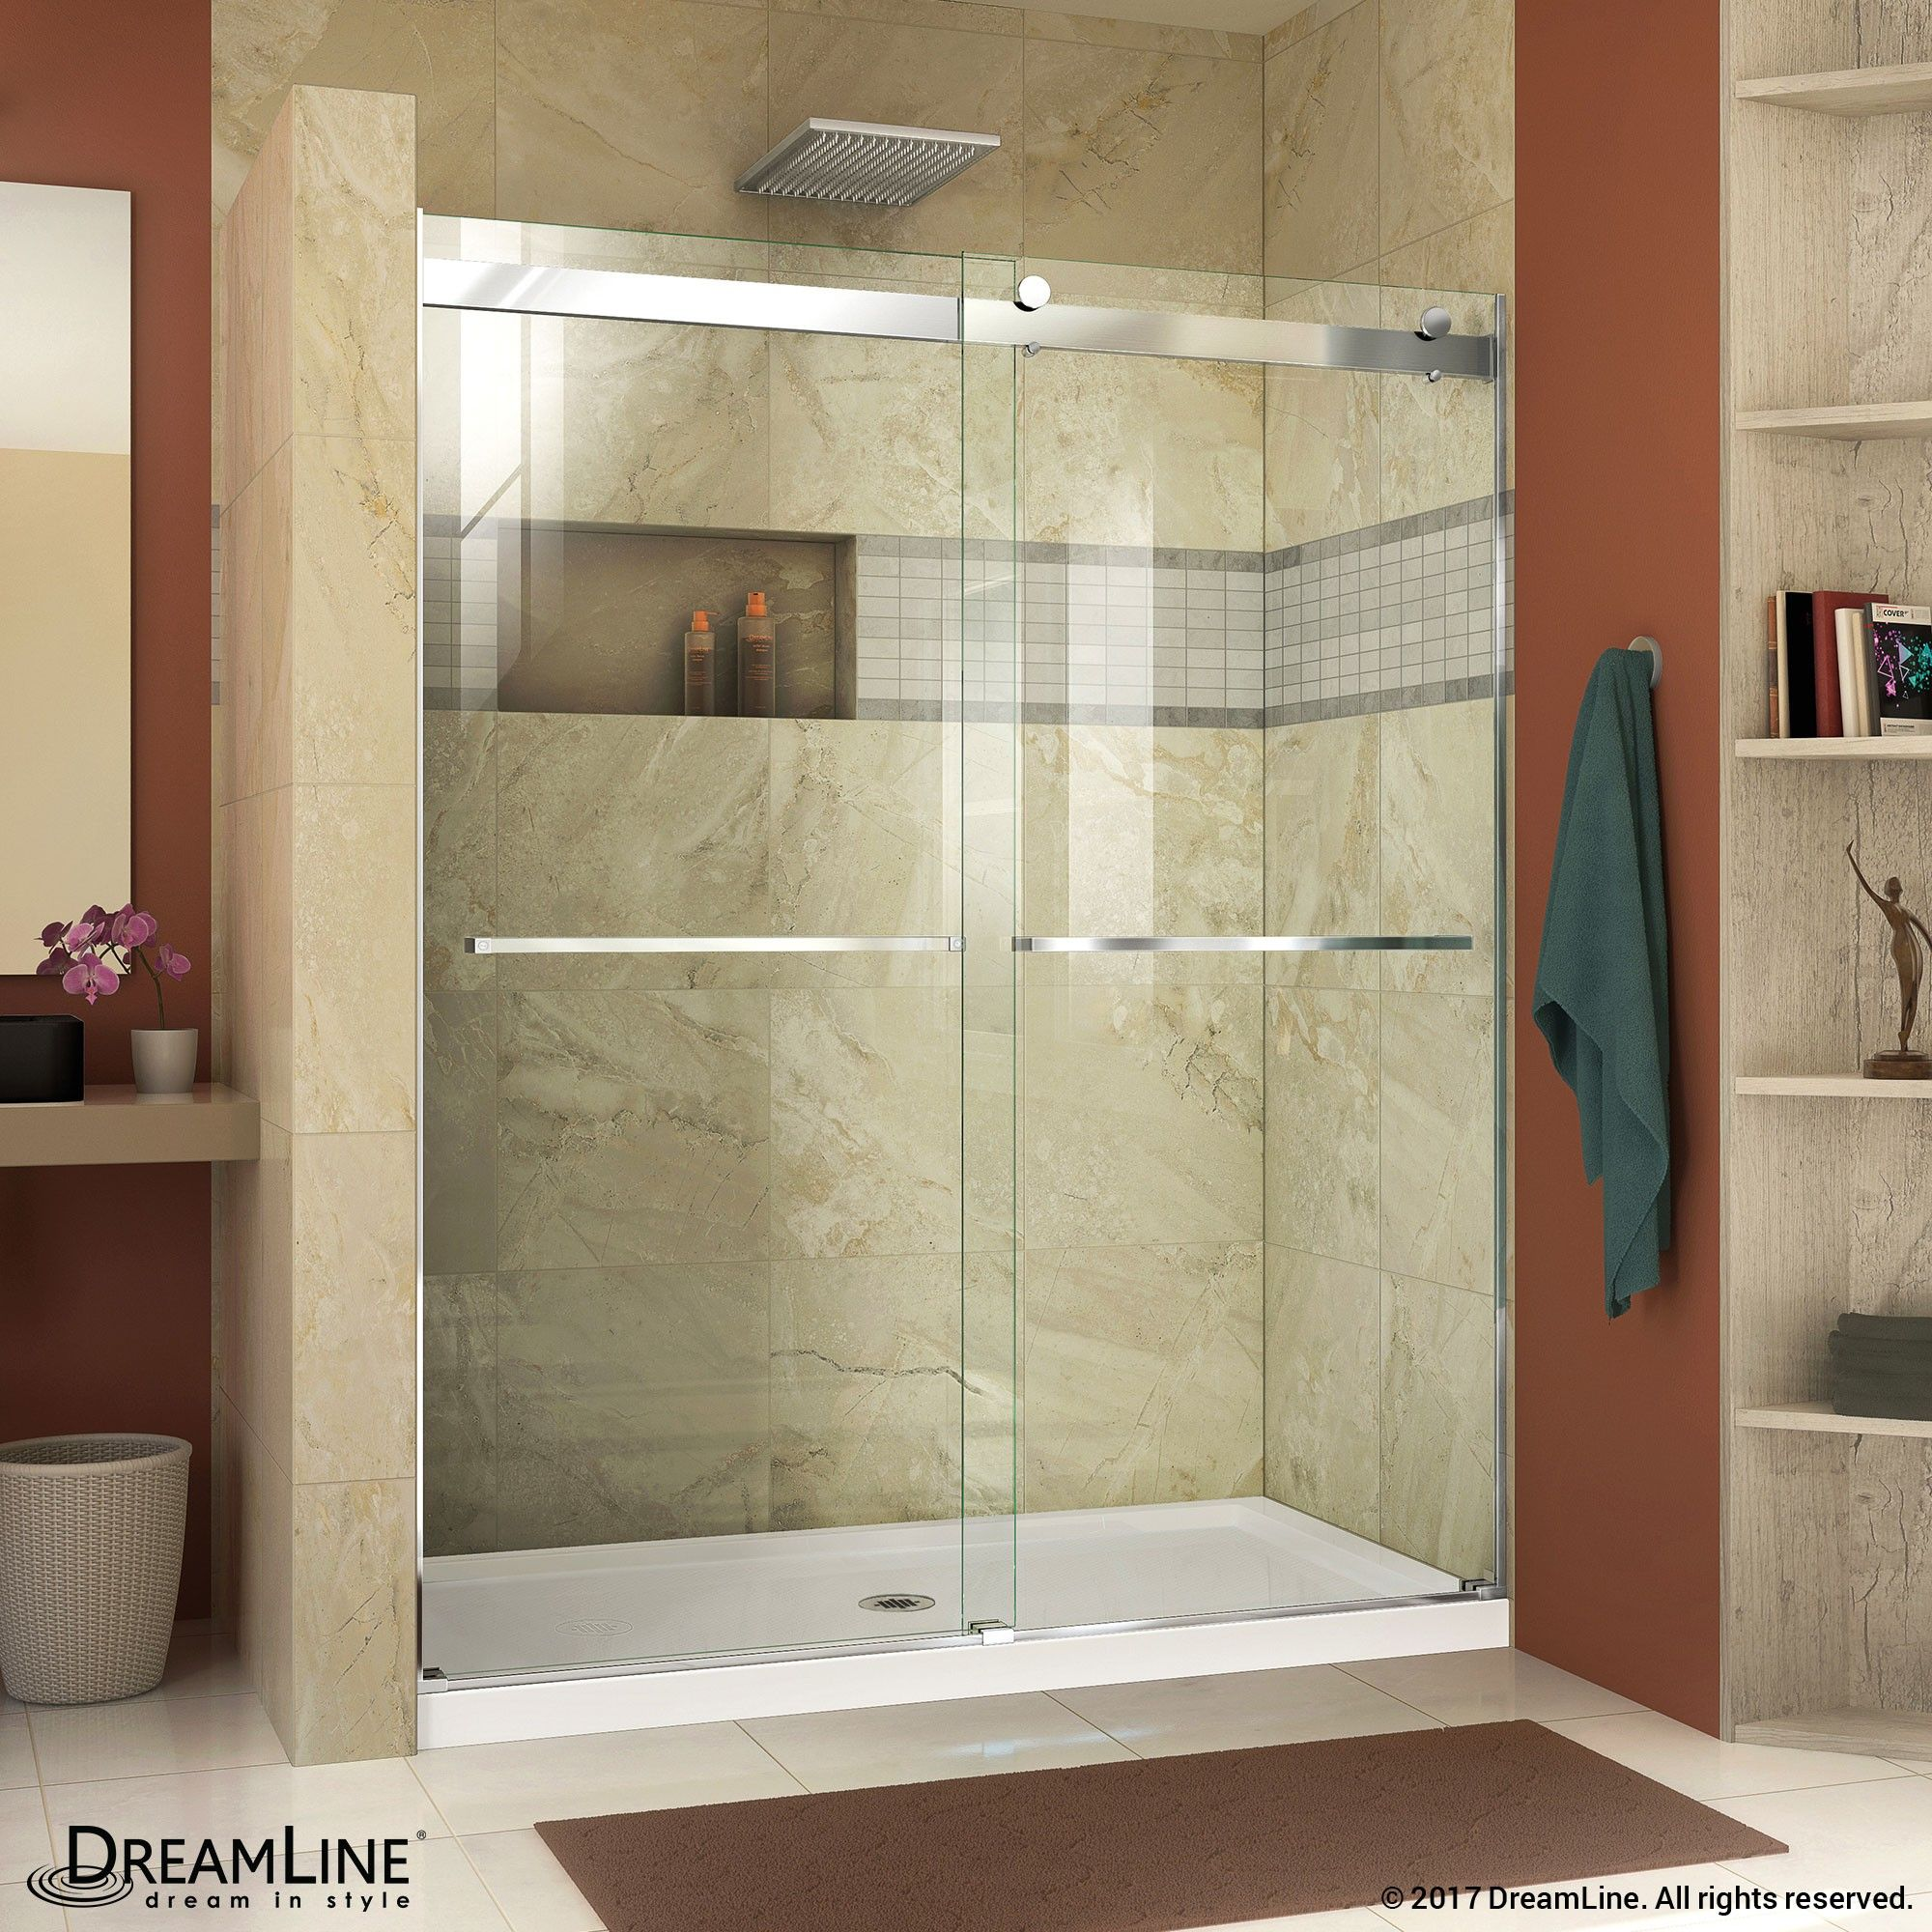 Step Into A Stunning Oasis Every Time You Shower The Dreamline